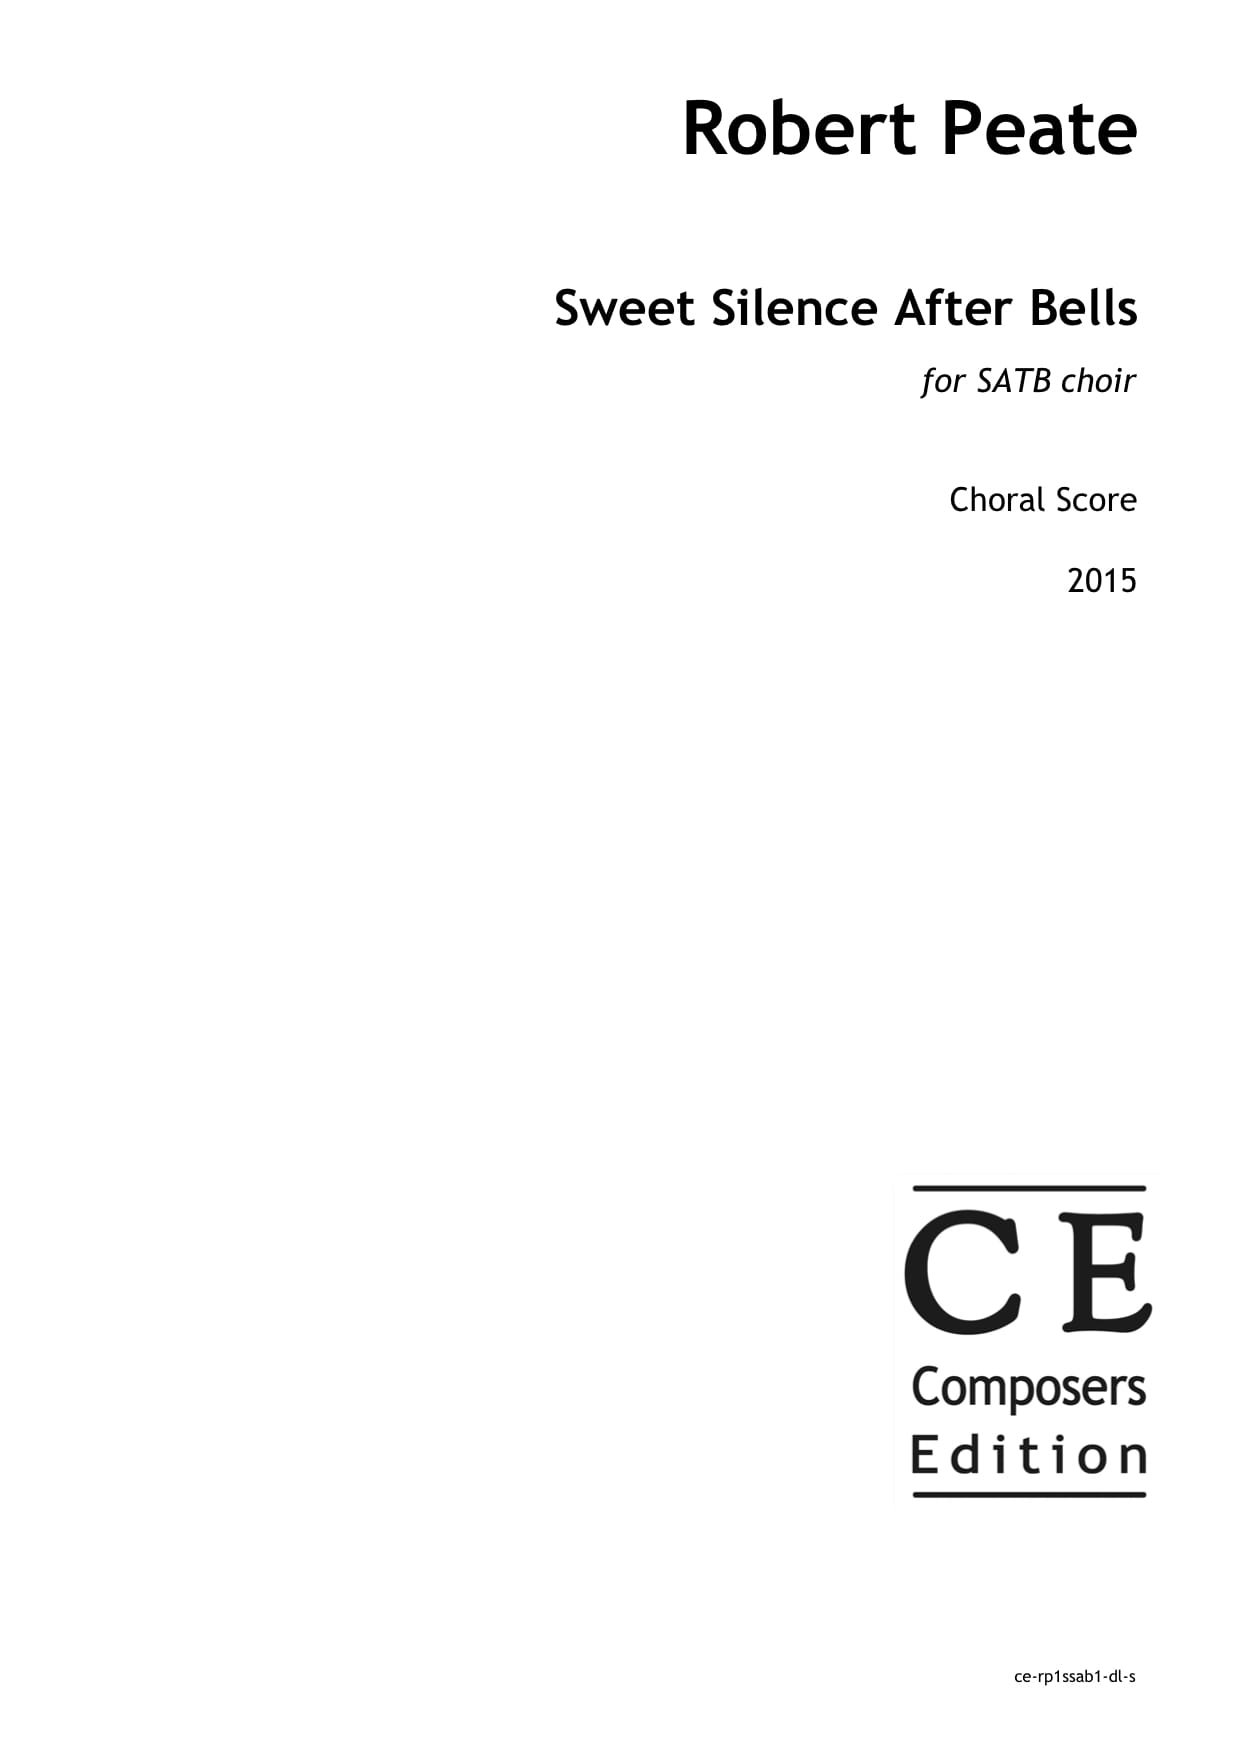 Robert Peate: Sweet Silence After Bells for SATB choir